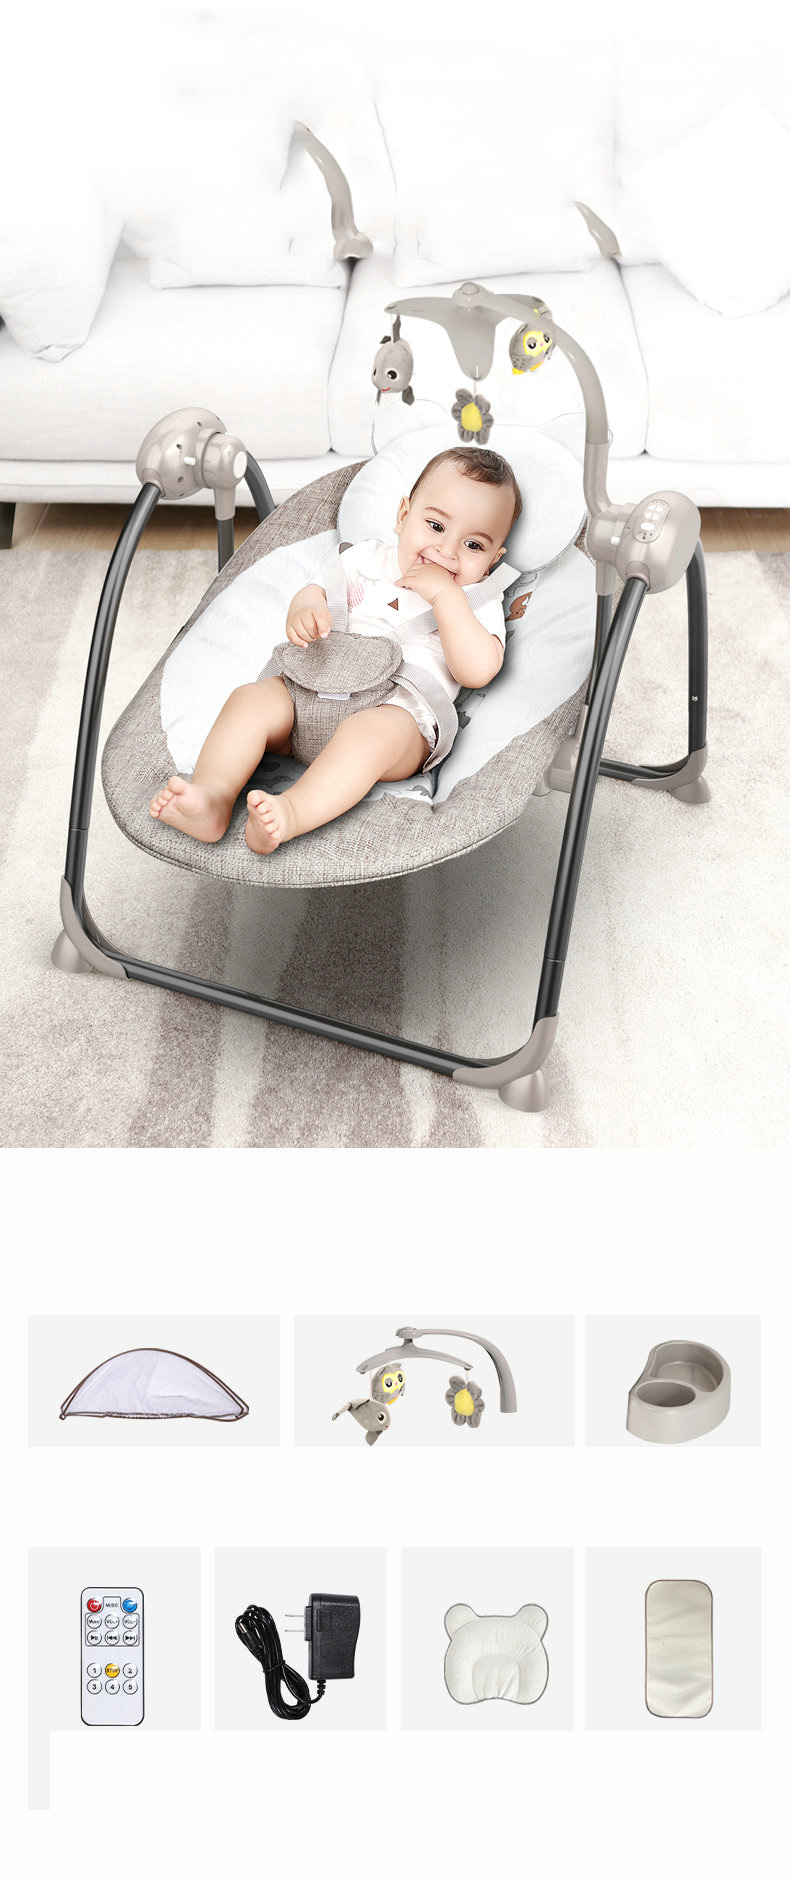 Hff087b4909d2475e8c64954add3c97b7Z Baby Swing Multifunctional Baby Electric Baby Rocking Chair Electric Baby Cradle With Remote Control Cradle Rocking Chair